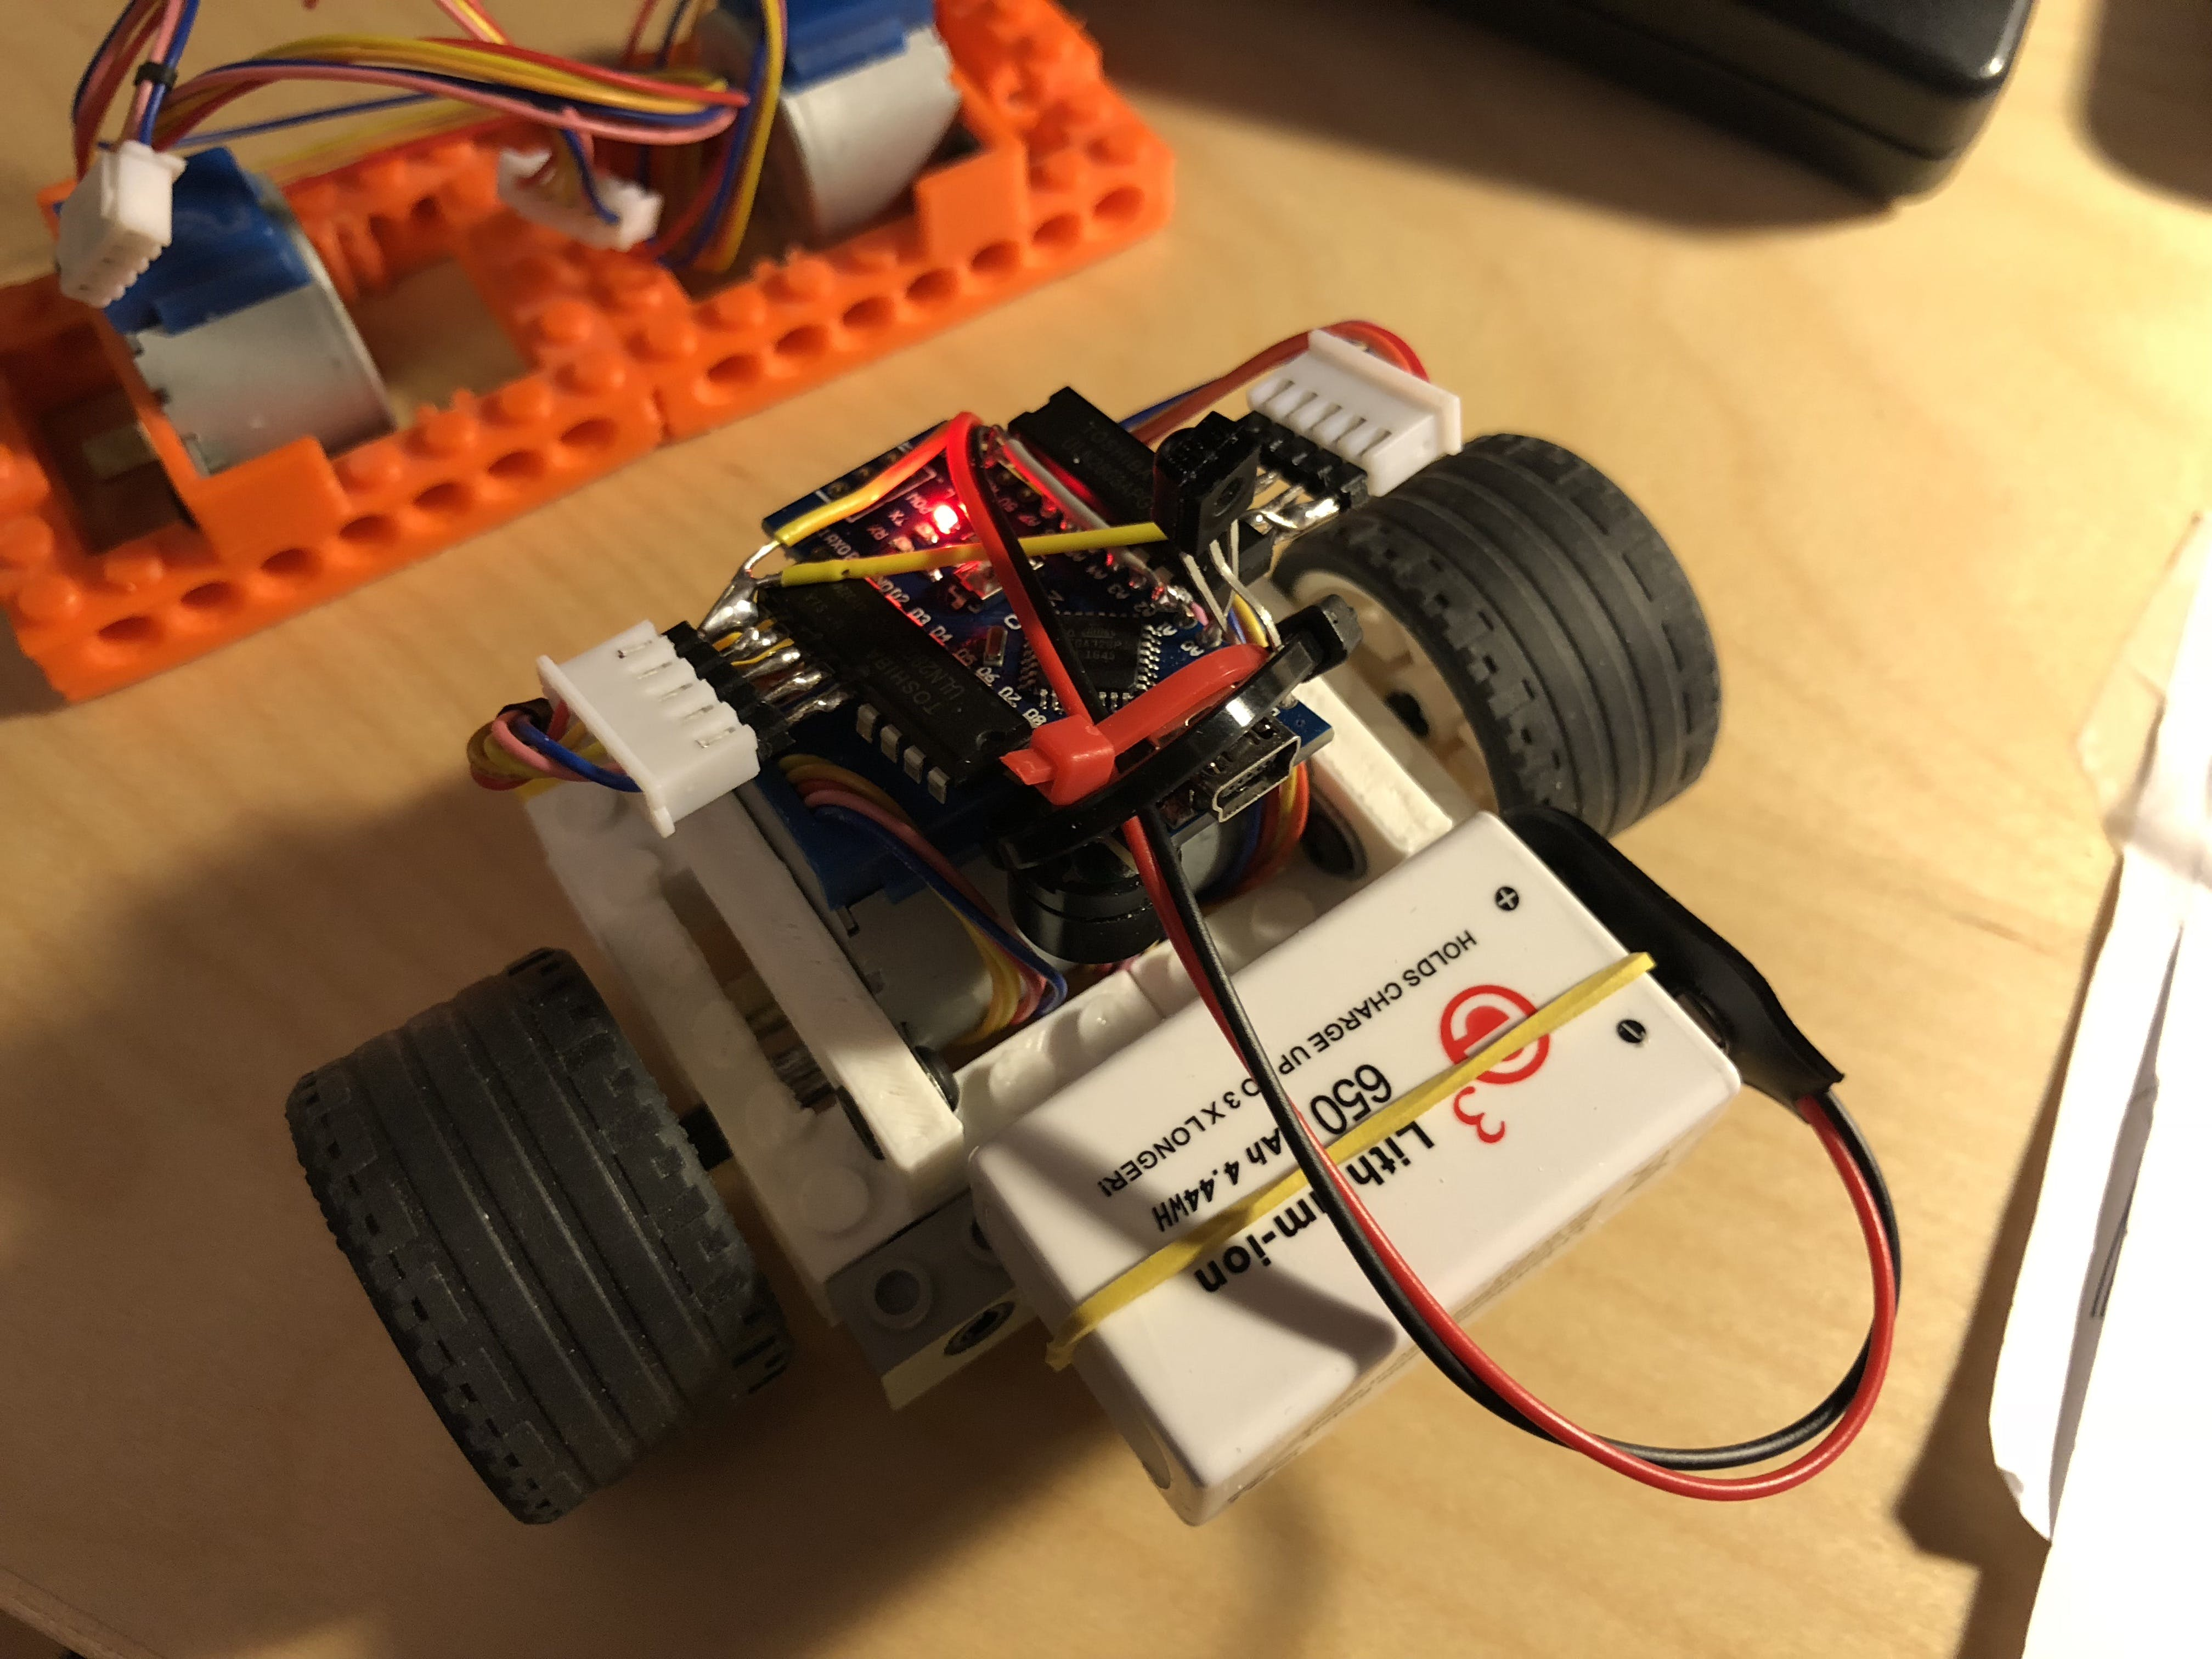 8x8 + wheels and battery sticking out a bit. Parts from bigger bot in the background.